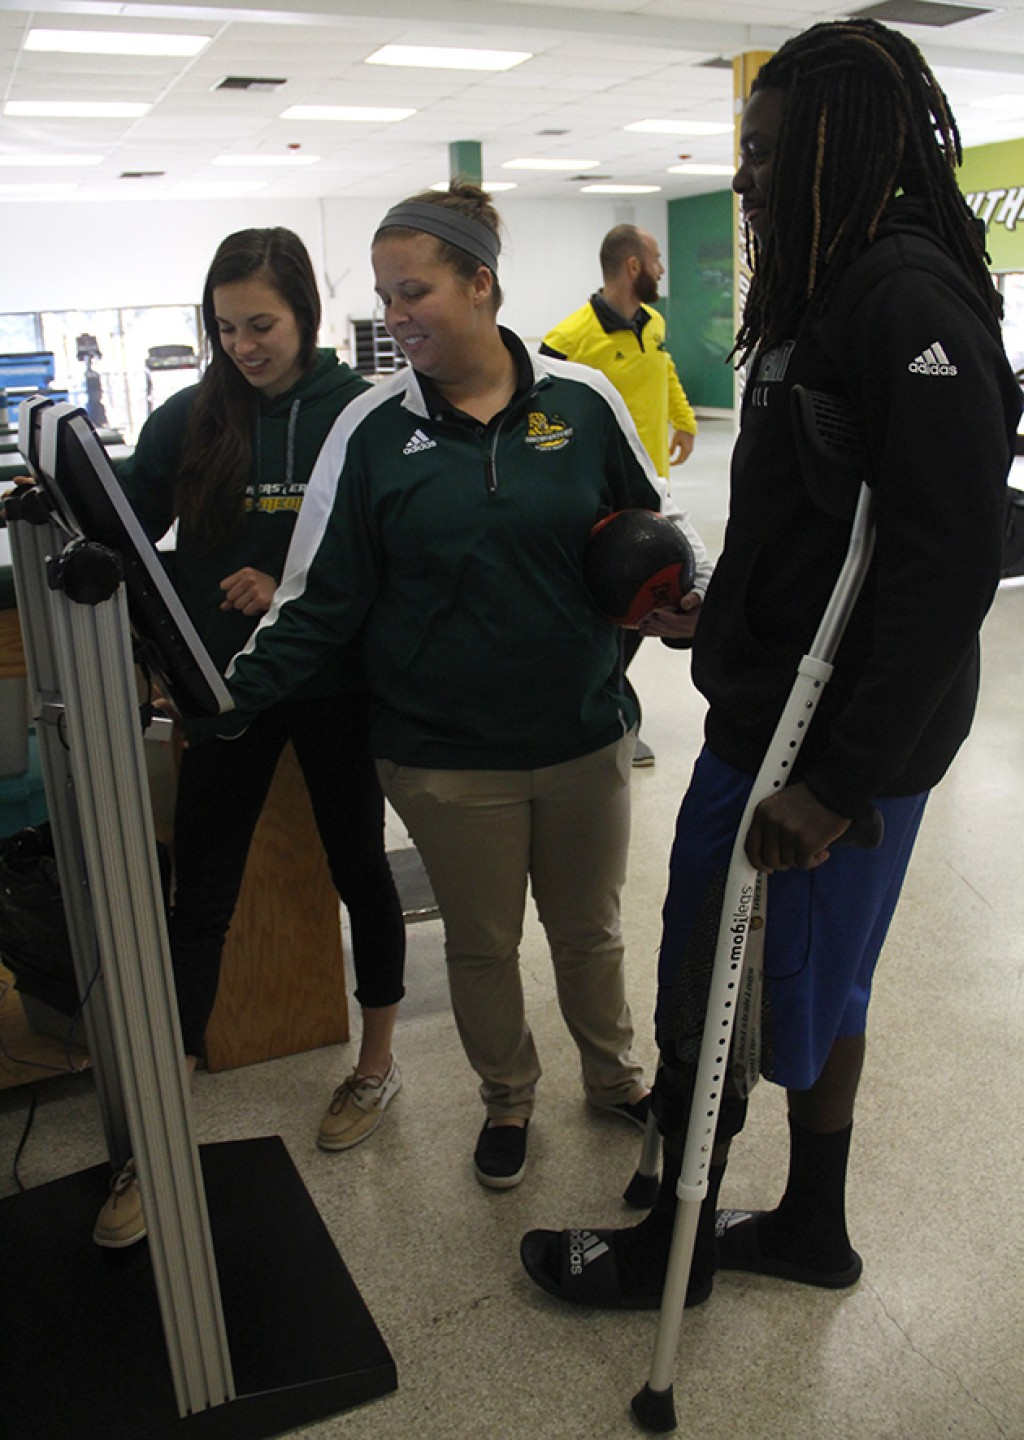 Jessica Van Sweden and Emily Gusew are assistant athletic trainers demonstrating how to use the login machine to athlete Tre' Bennett.